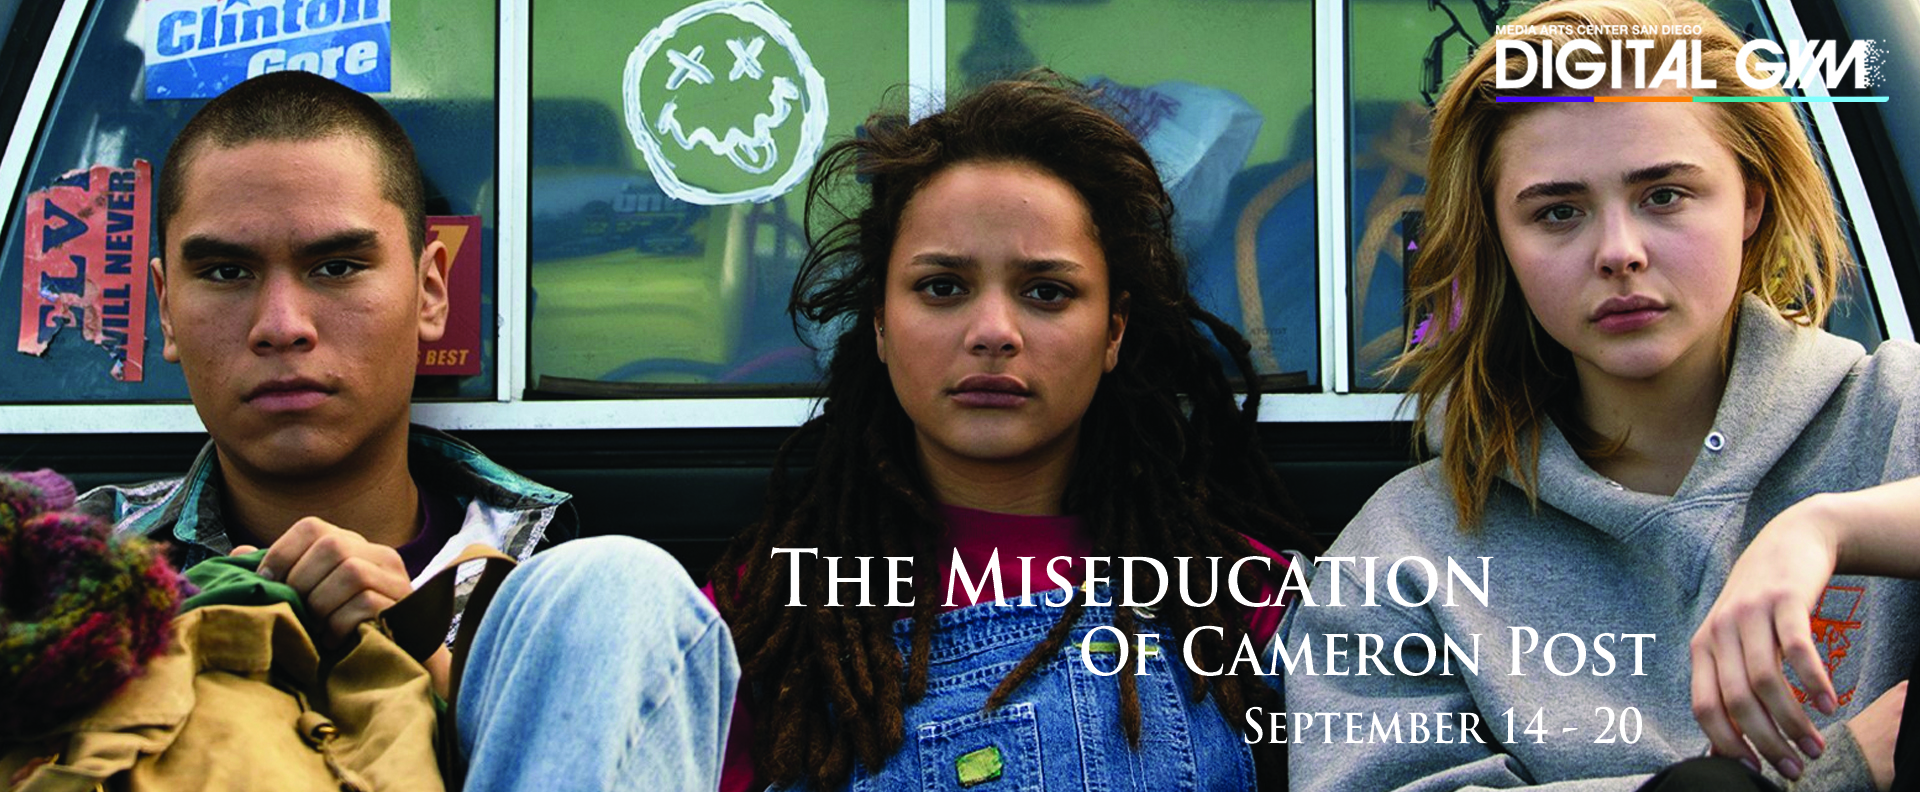 The Miseducation of Cameron Post Digital Gym Cinema San Diego